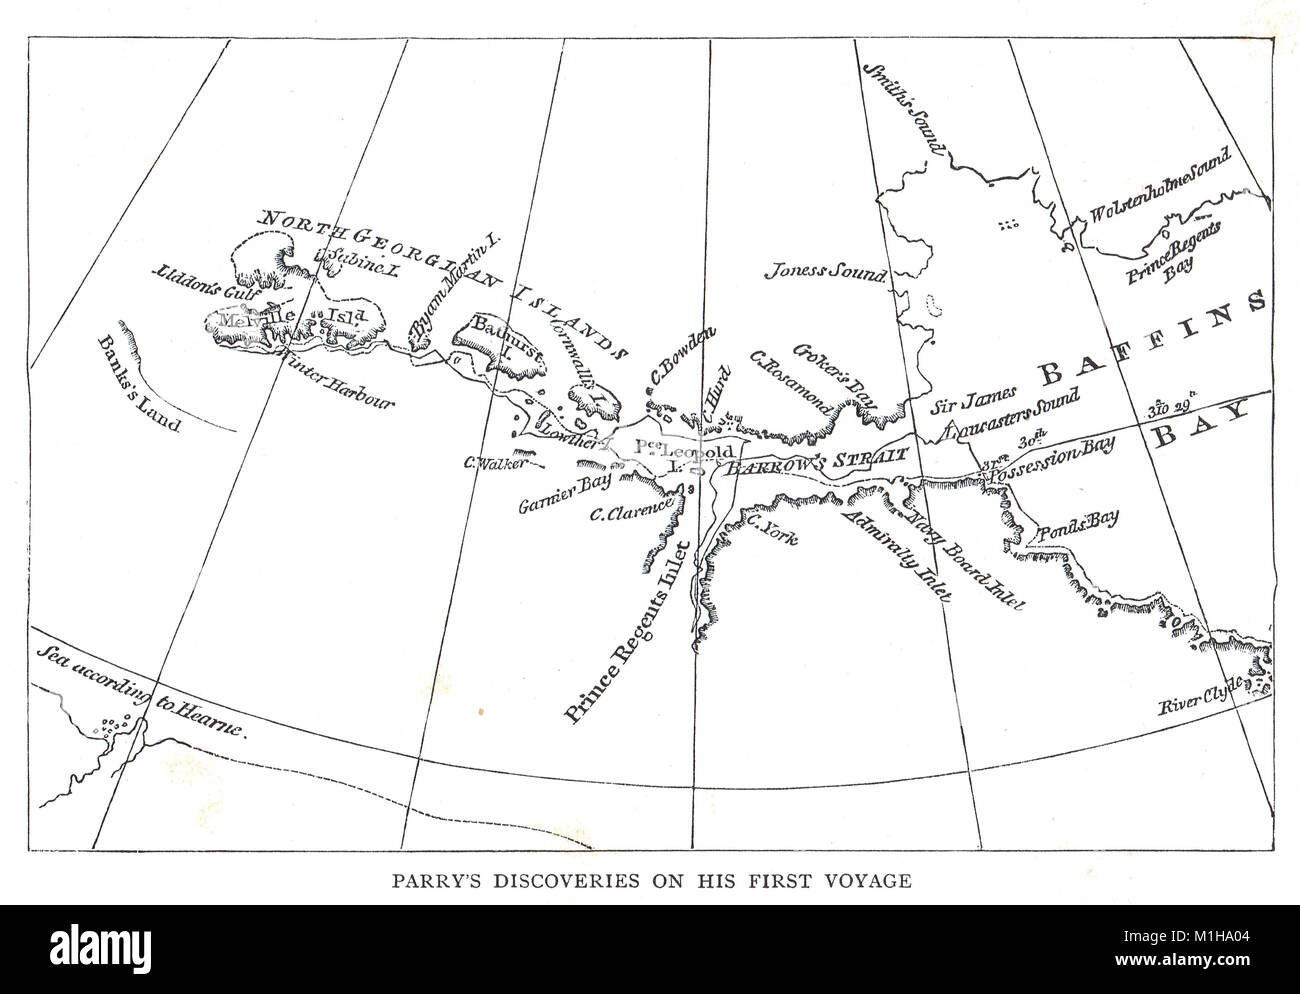 Map of Parry's discoveries on his first Arctic voyage 1819 - Stock Image